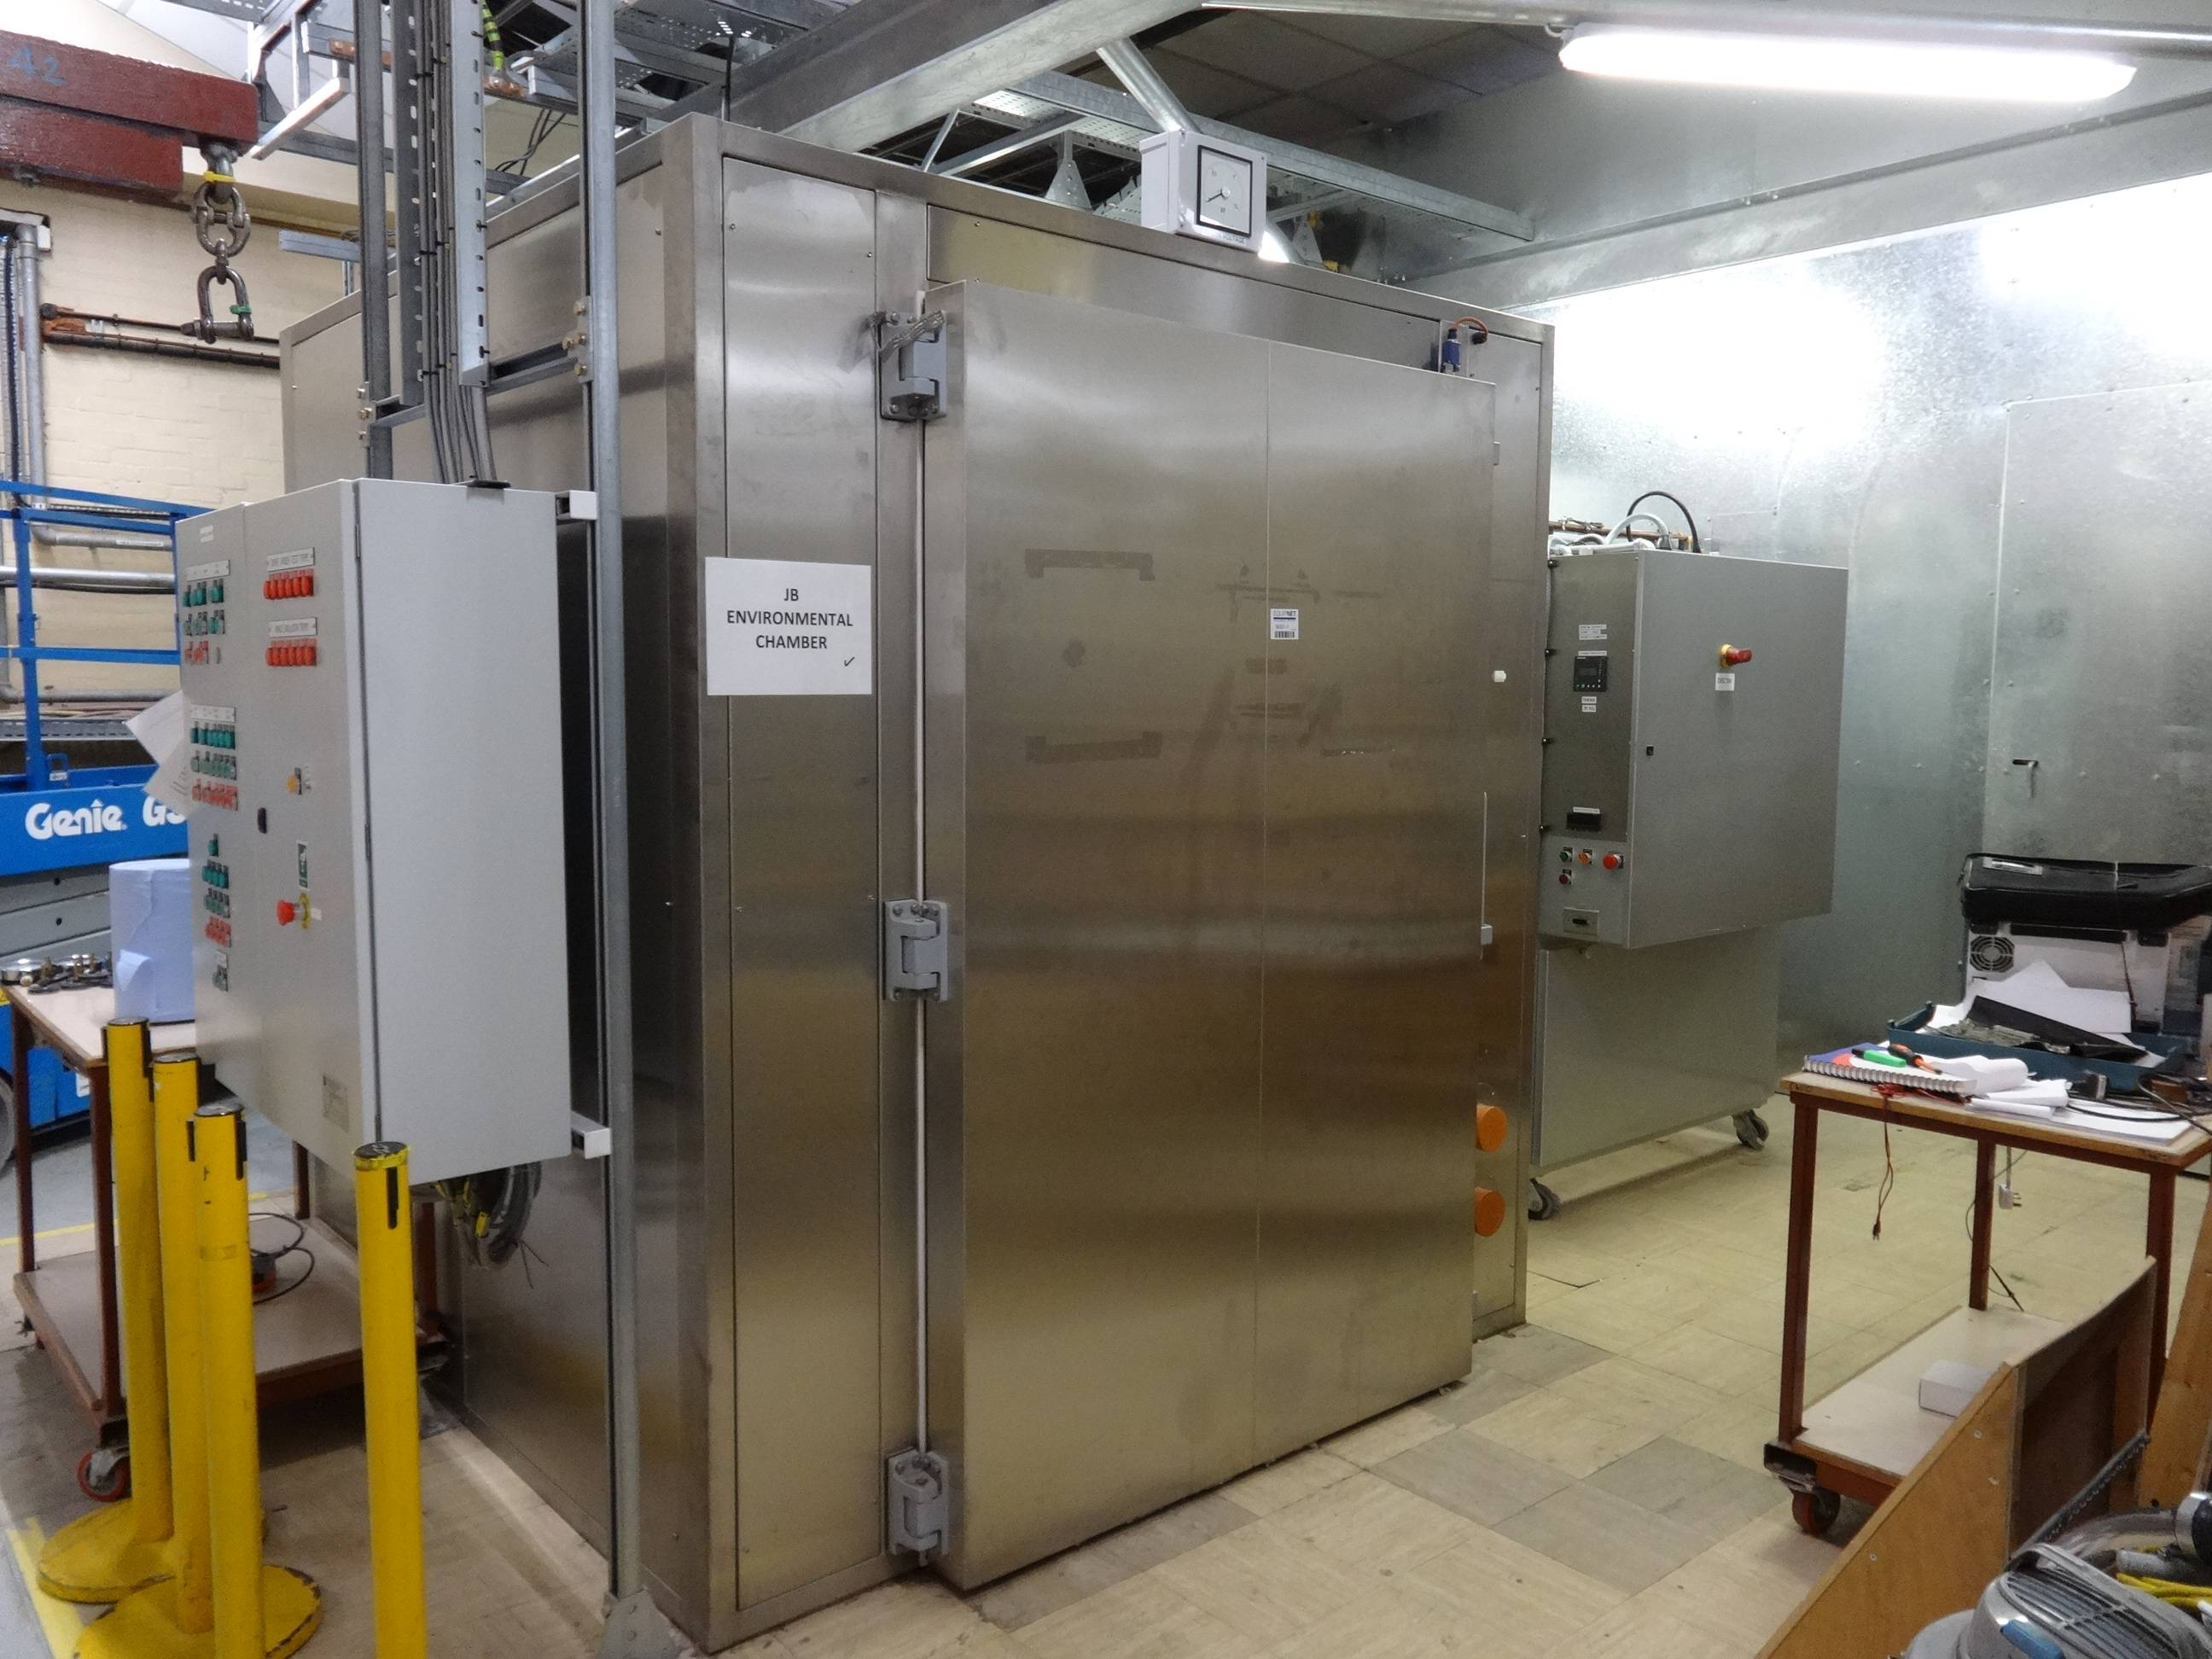 JB Environmental Chamber fitted with Pannel Controller and Keep Kite KVC1 Air Cooled Condenser